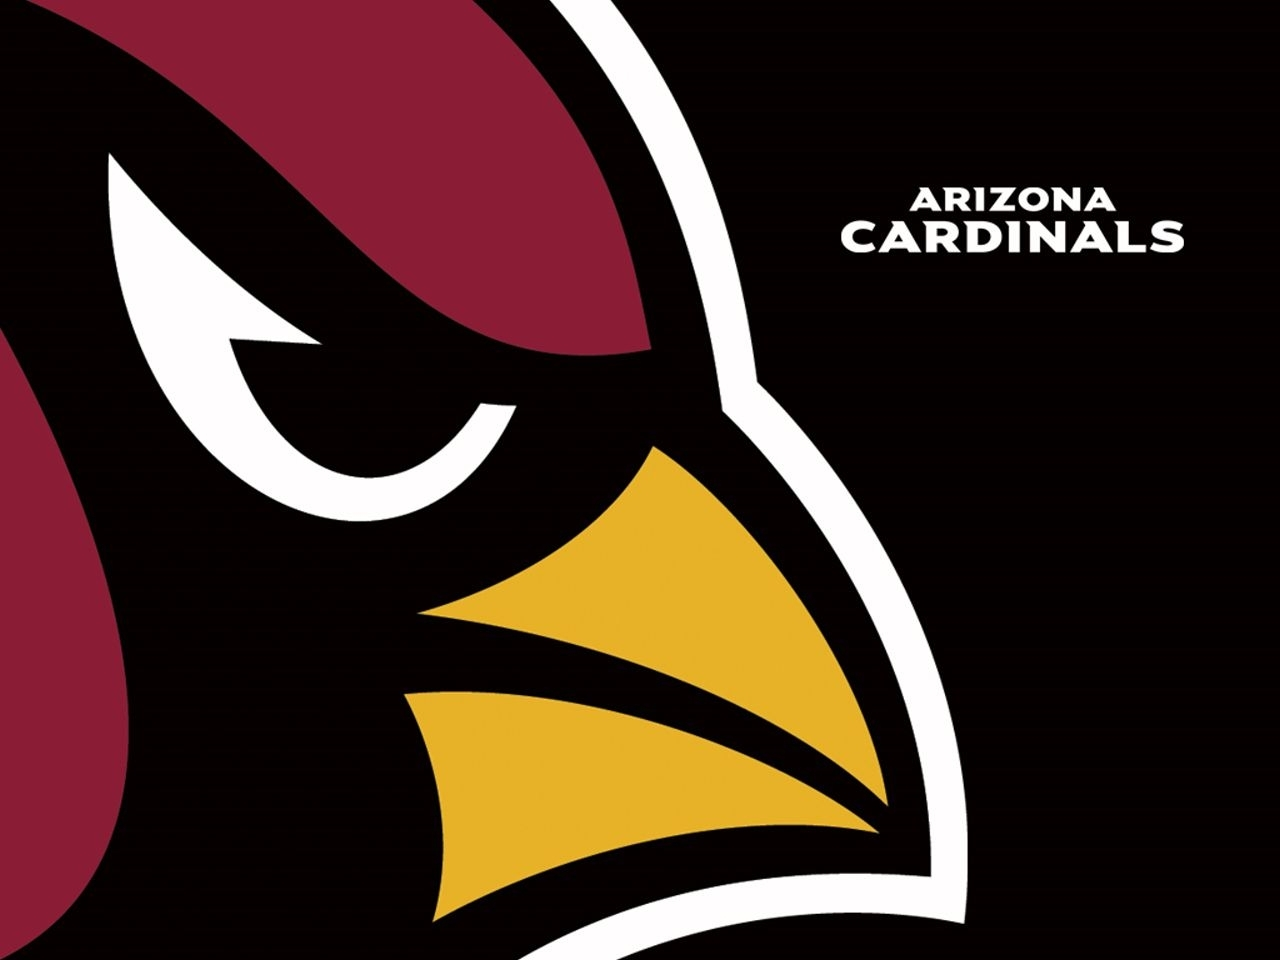 download free arizona cardinals wallpapers for your mobile phone | i